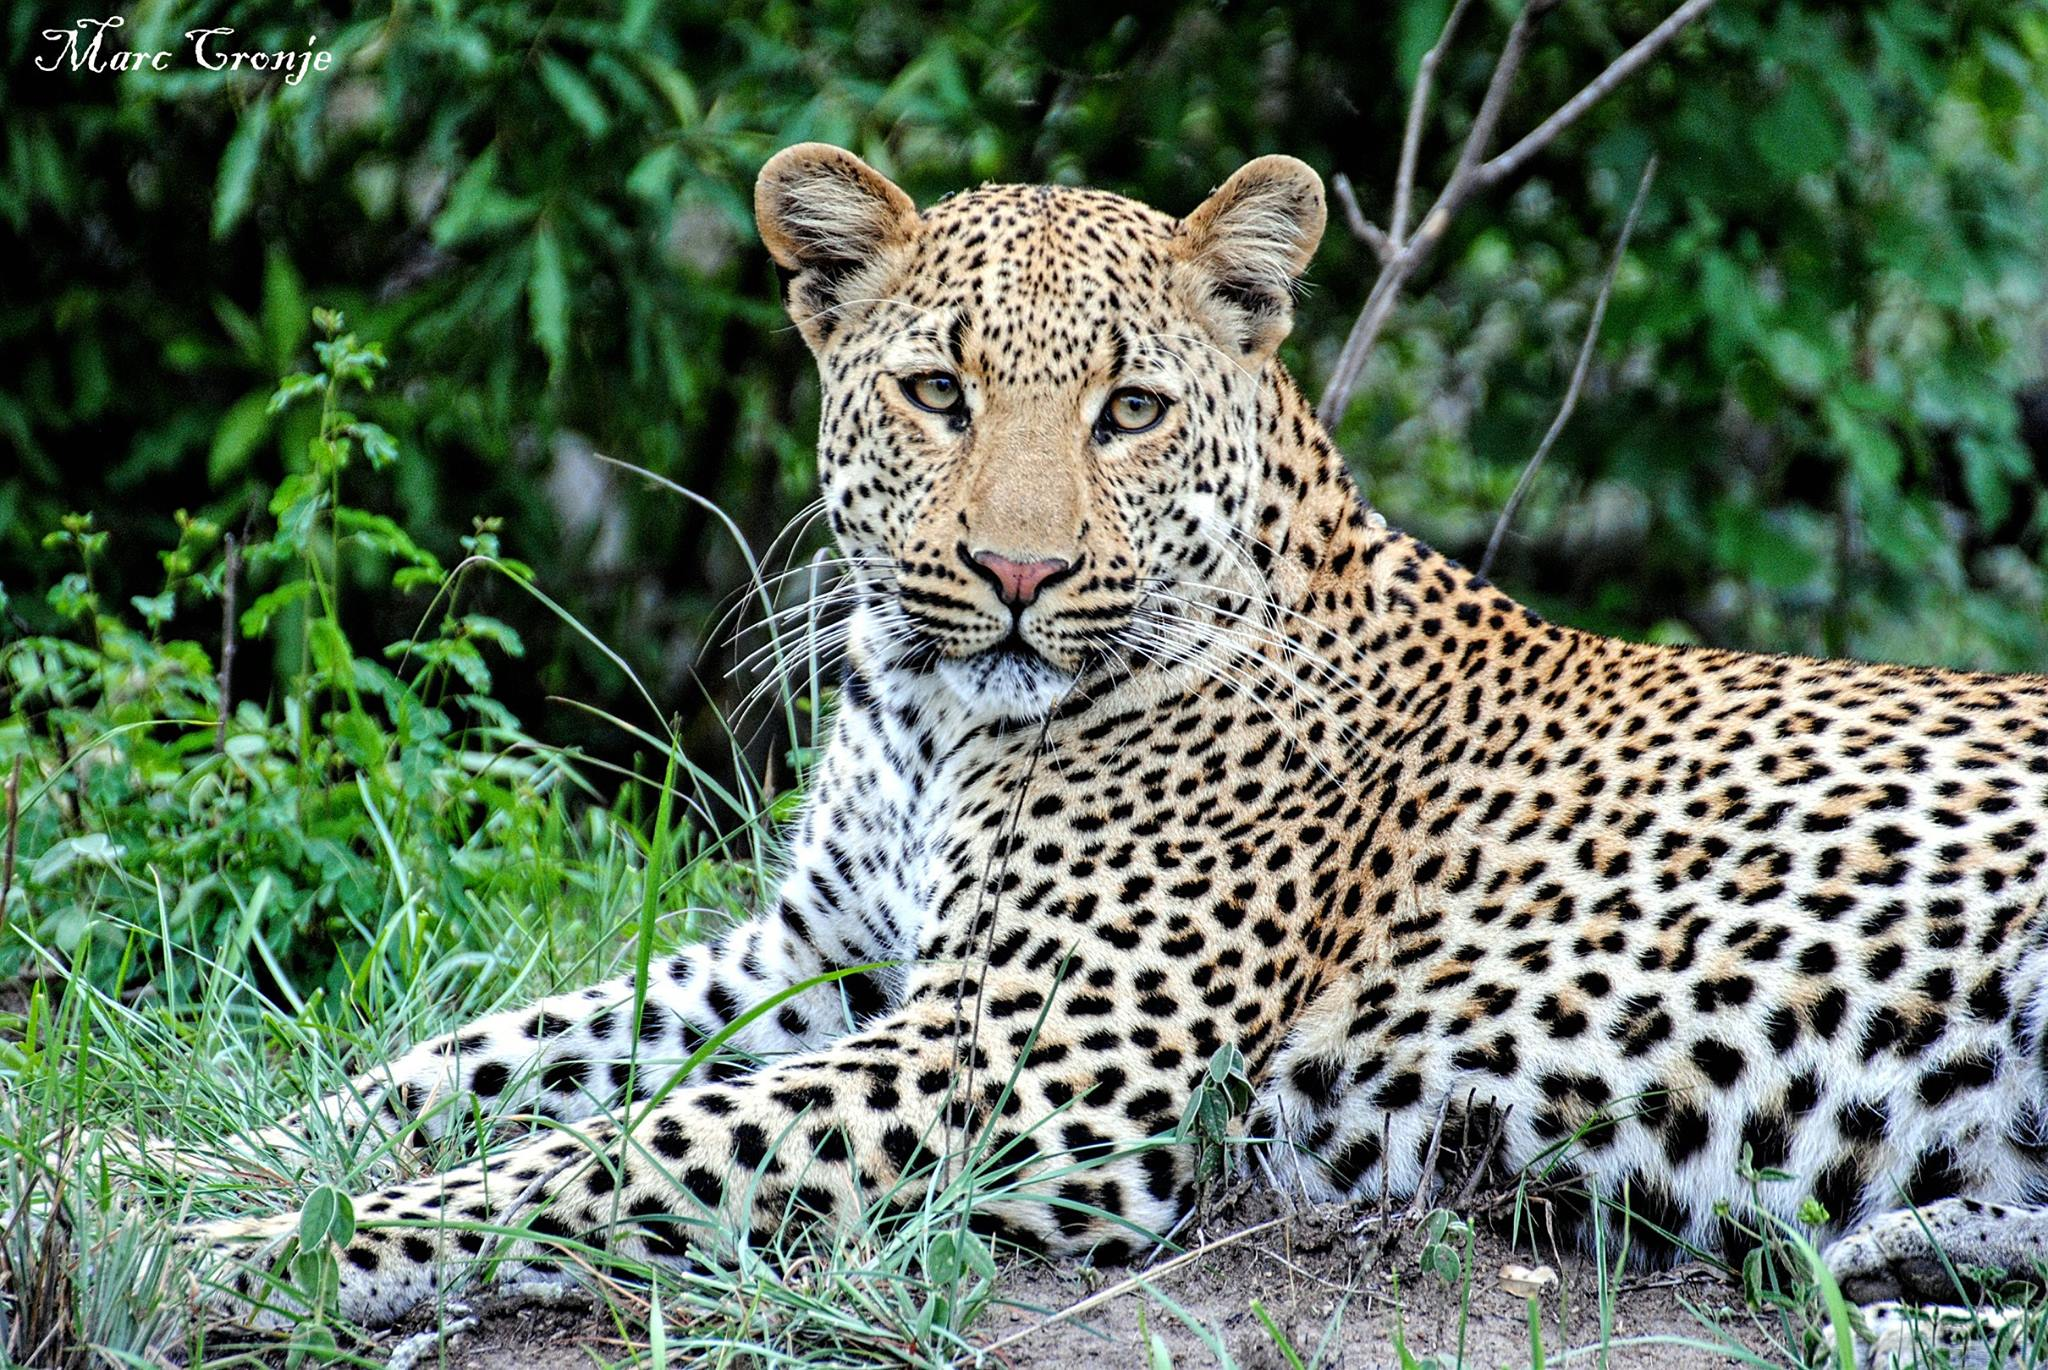 Leopard resting. Destination: Kruger National Park, South Africa. To the delight of his clients, Marc seems to have a sixth sense as to where to find these gorgeous cats. Photo:  ©MArc Cronje , Independent Field guide, African wildlife specialist.